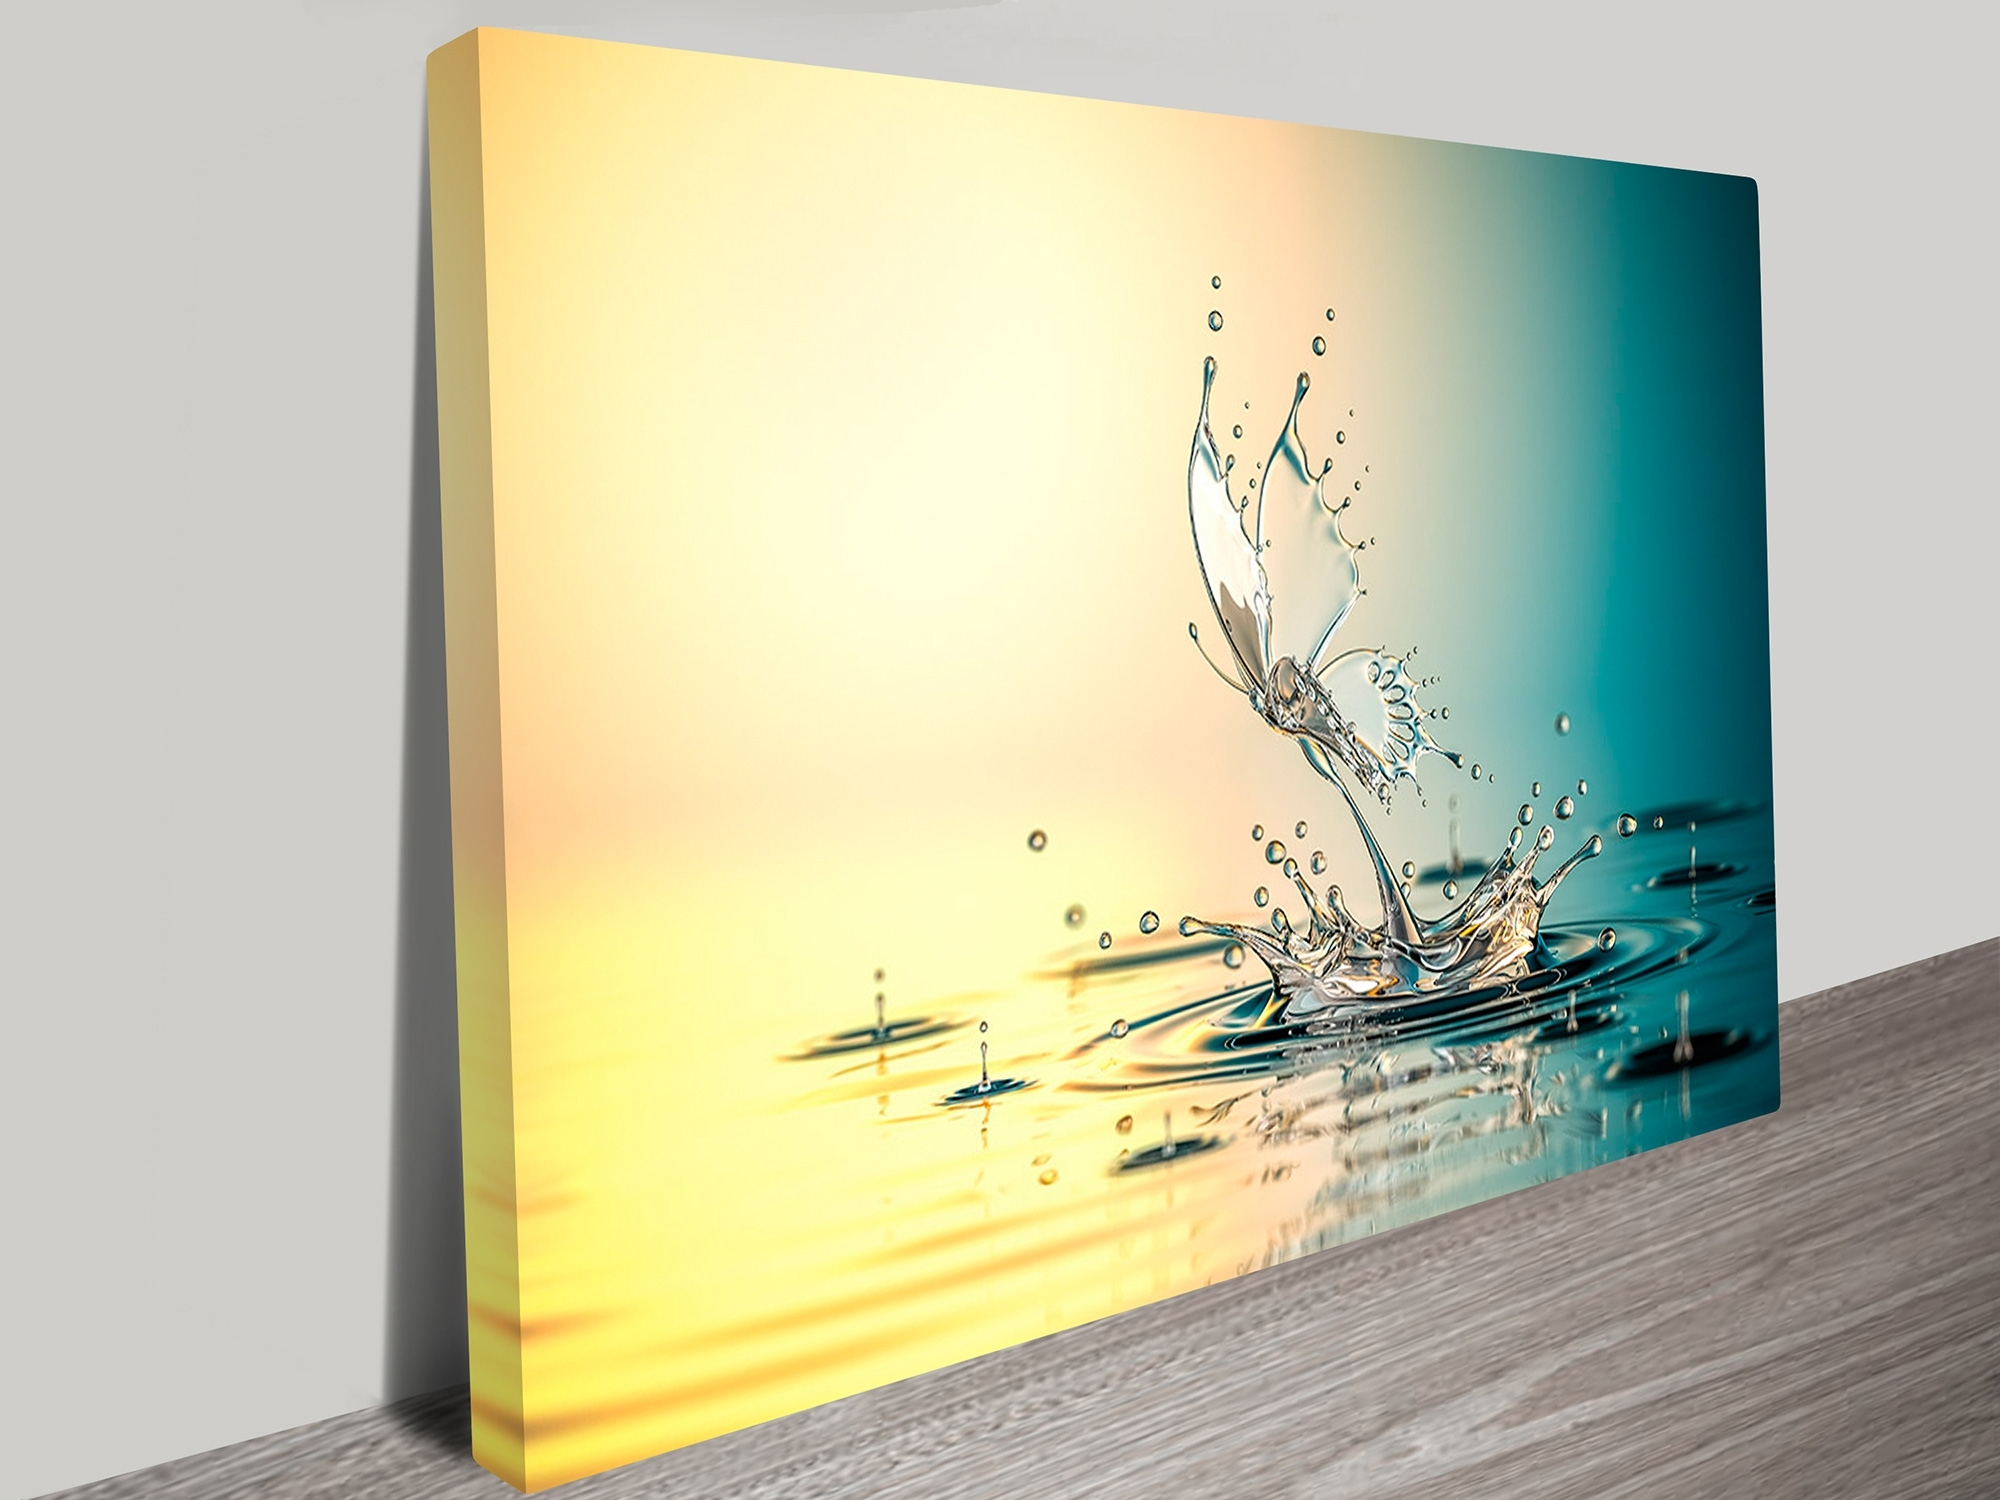 Water Butterfly Abstract Canvas Wall Art Geelong Intended For Well Known Abstract Canvas Wall Art Australia (View 12 of 15)